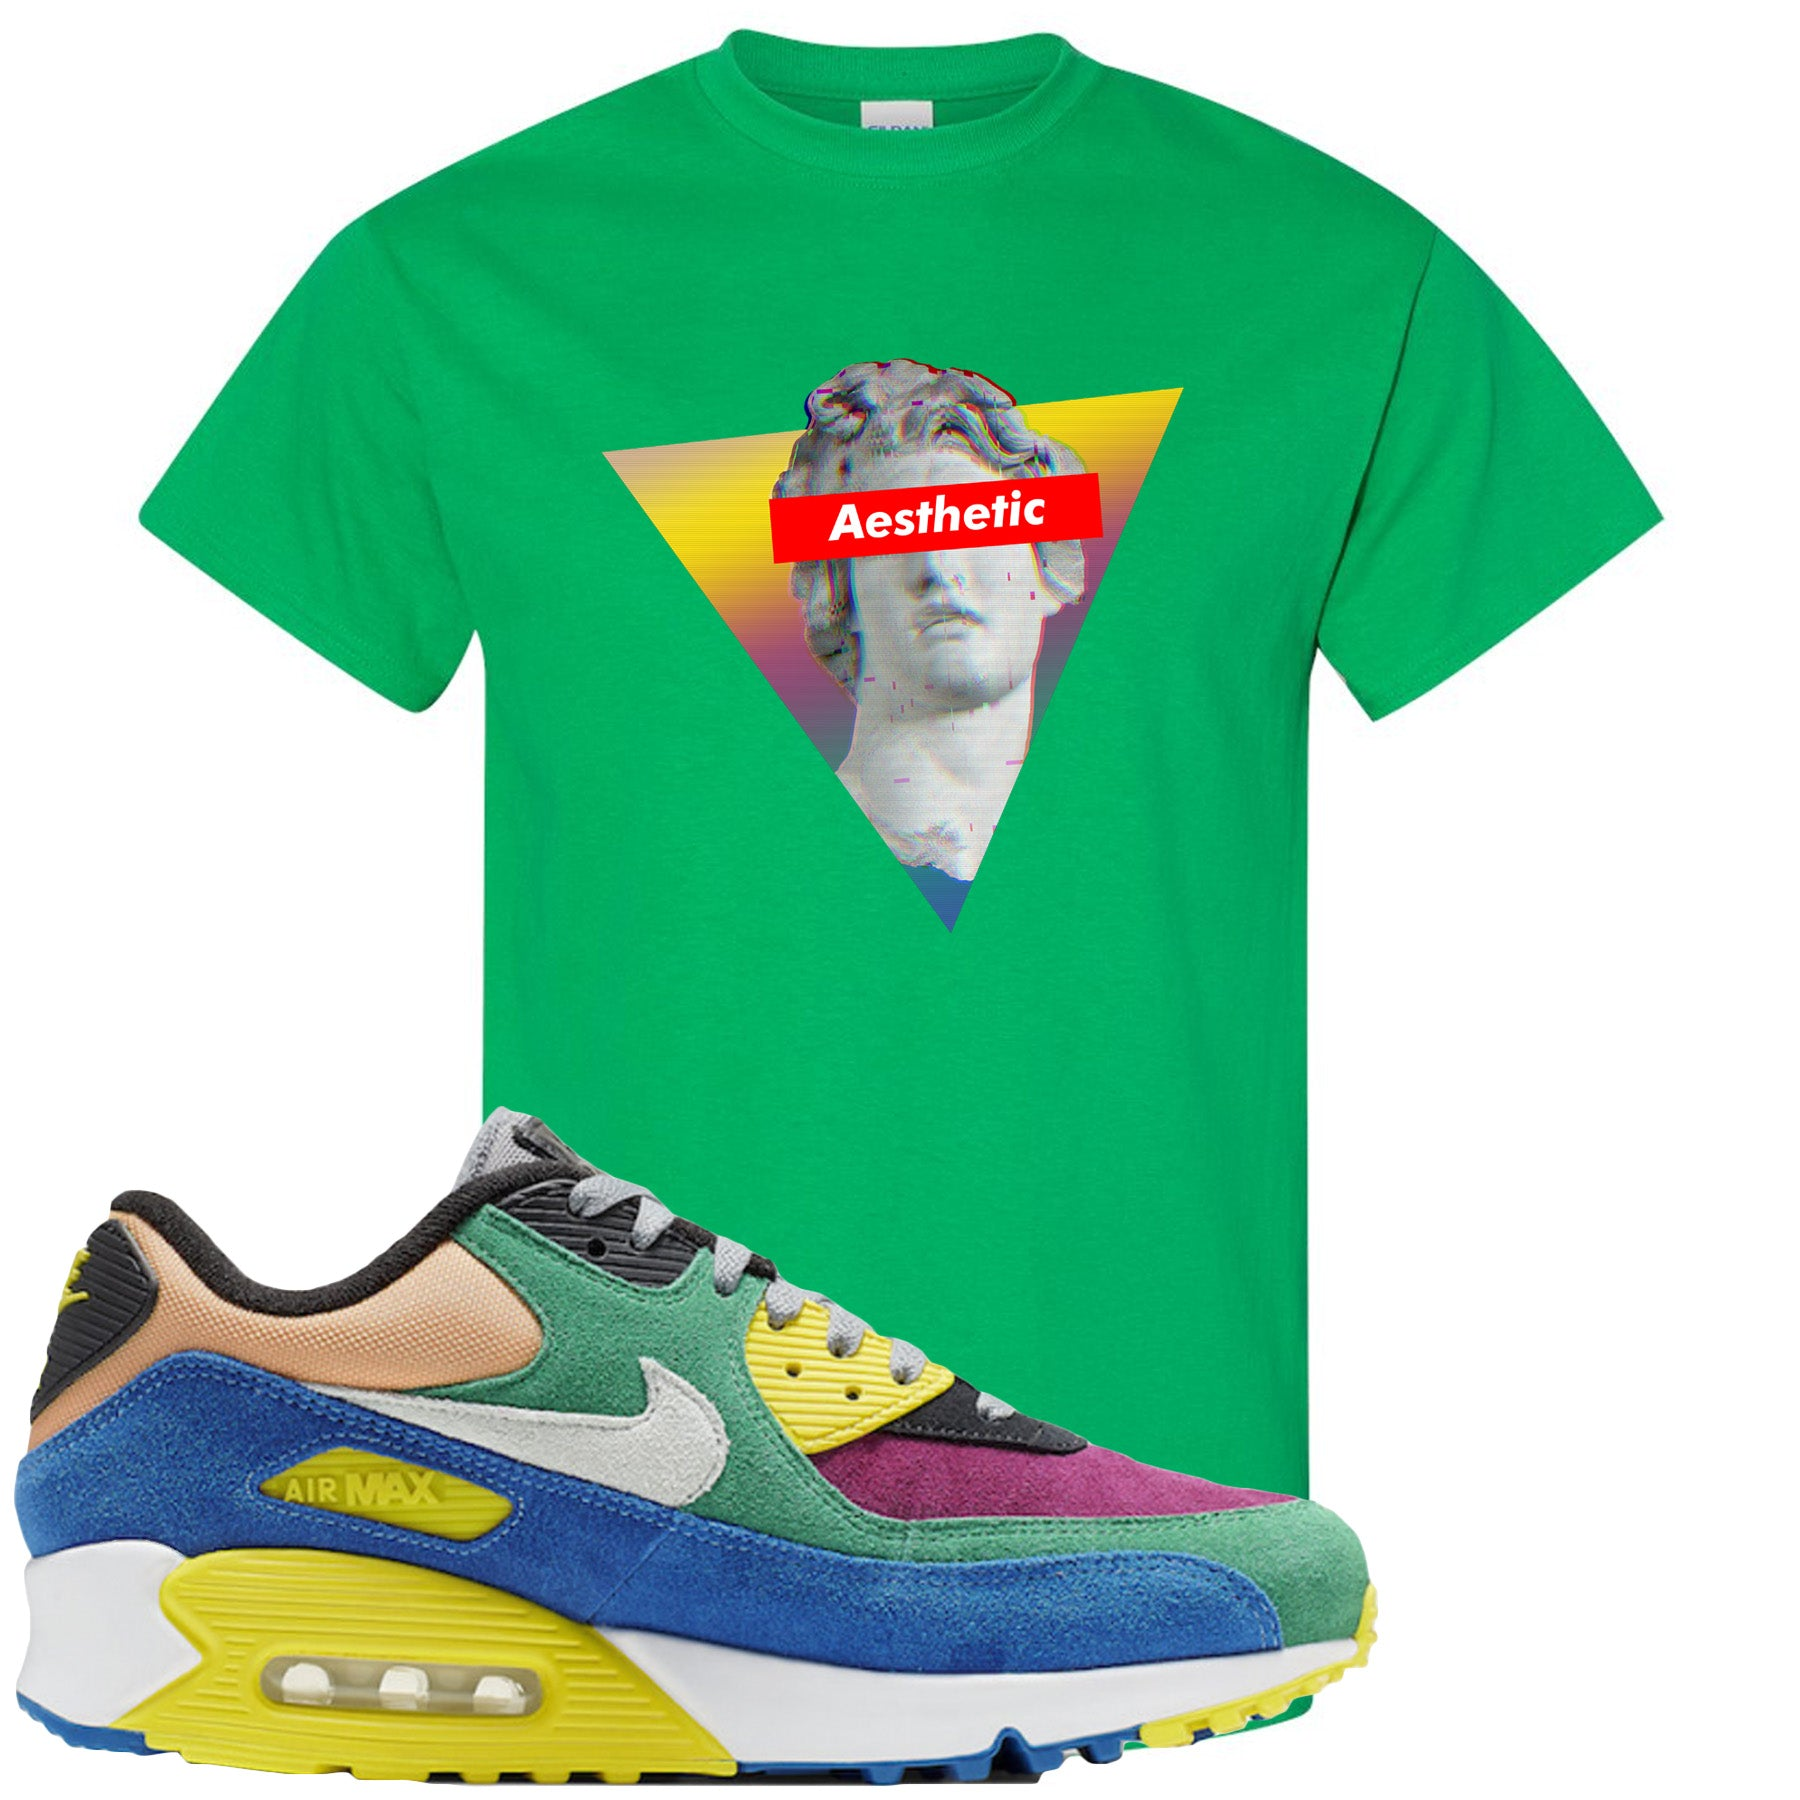 new arrival 55c25 1715a Nike Air Max 90 Viotech 2.0 Sneaker Match Aesthetic Kelly Green T-Shirt